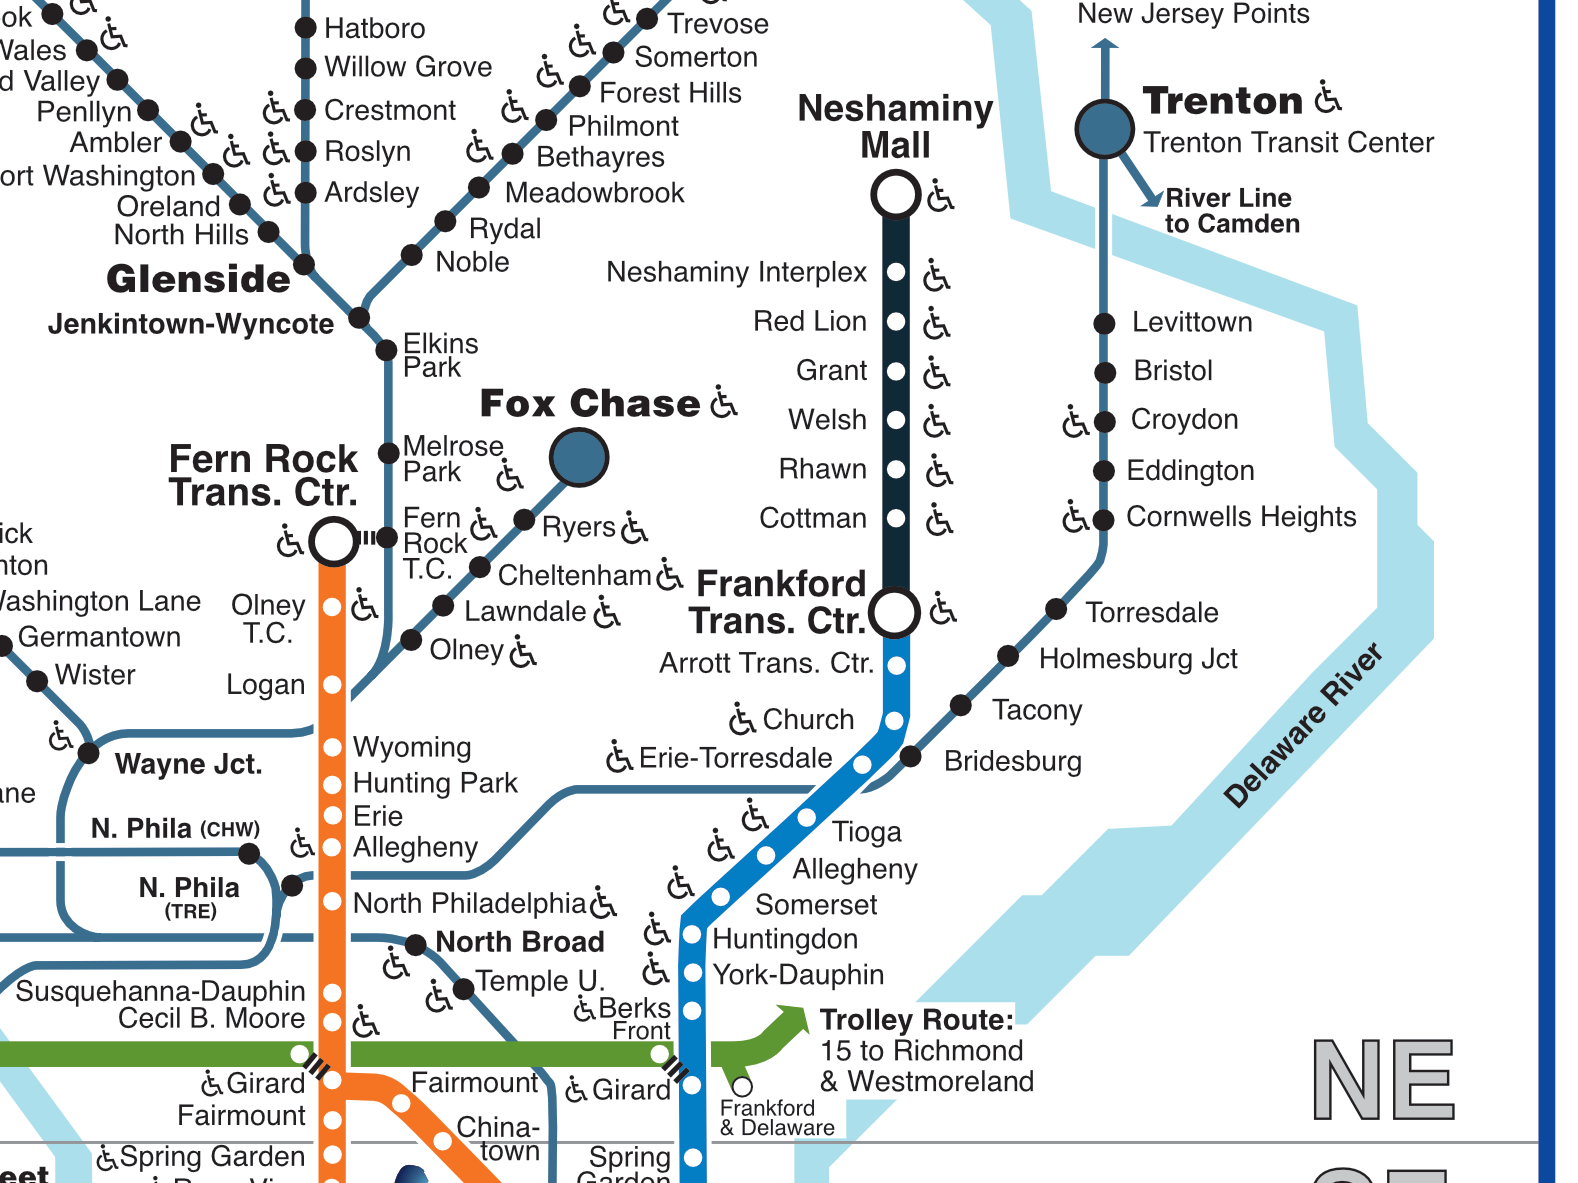 SEPTA Map with Boulevard Direct line (Late 2018) by Melody ... on miami metrorail map, san francisco municipal railway map, massachusetts bay transportation authority map, bay area rapid transit map, baltimore and ohio railroad map, pan am railways map, san francisco muni map, go transit map, nj transit map, north jersey coast line map, broad street subway map, rta rapid transit map, canadian national map, milwaukee county transit system map, second avenue subway map, dallas area rapid transit map, lirr map, long island railroad map, amtrak map, missouri pacific map,